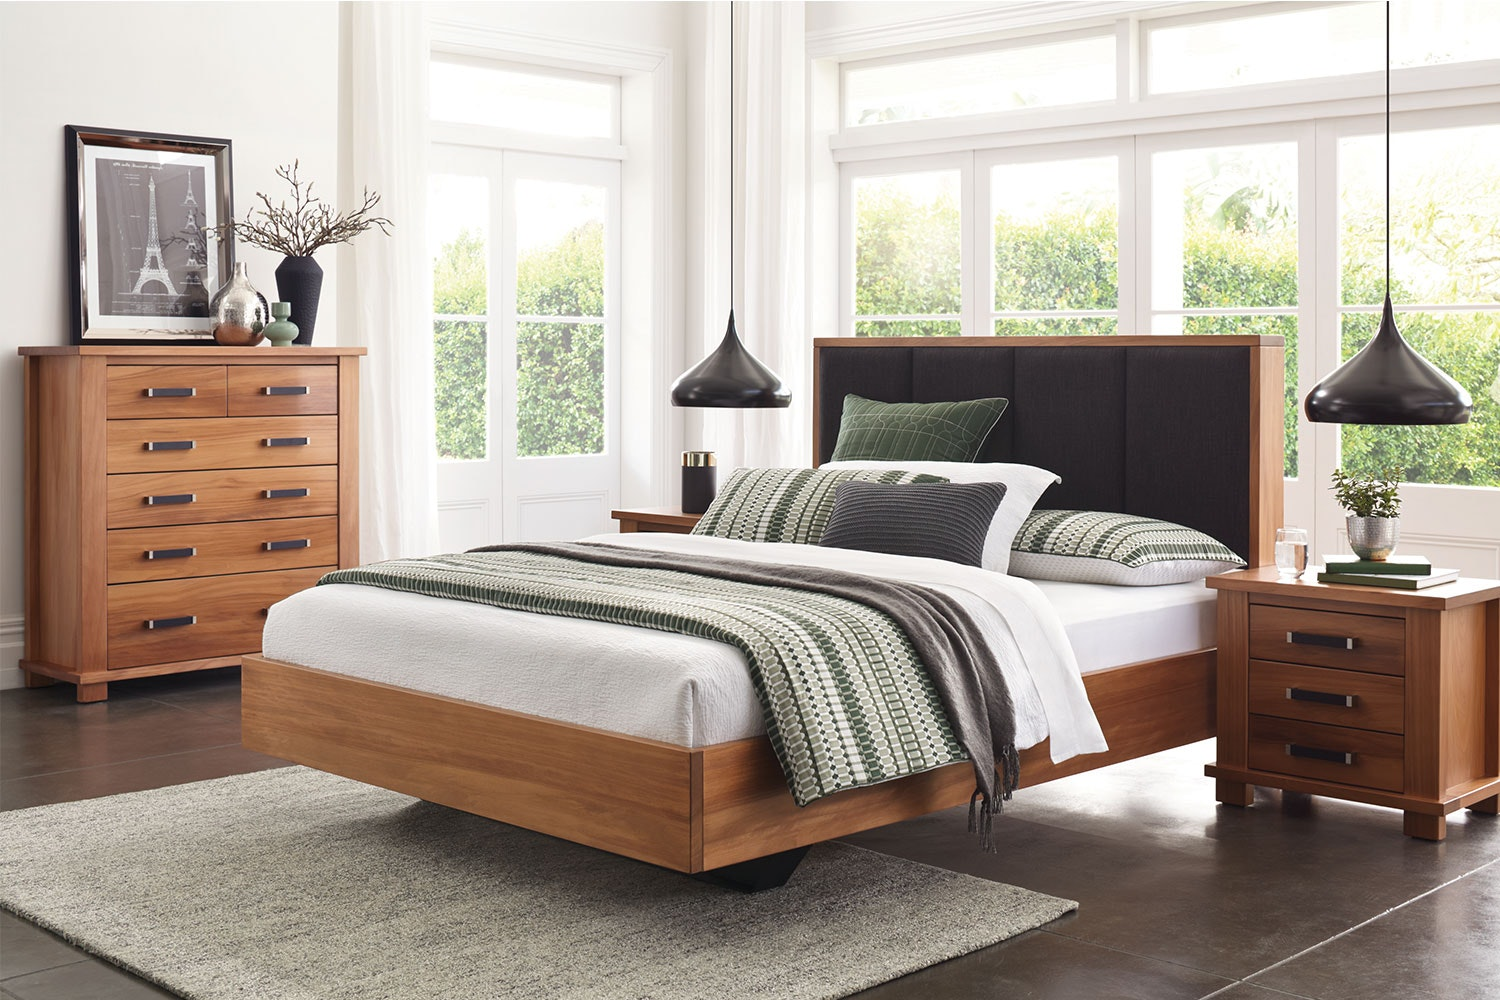 Huntsman Float King Bed Frame by Ezirest Furniture